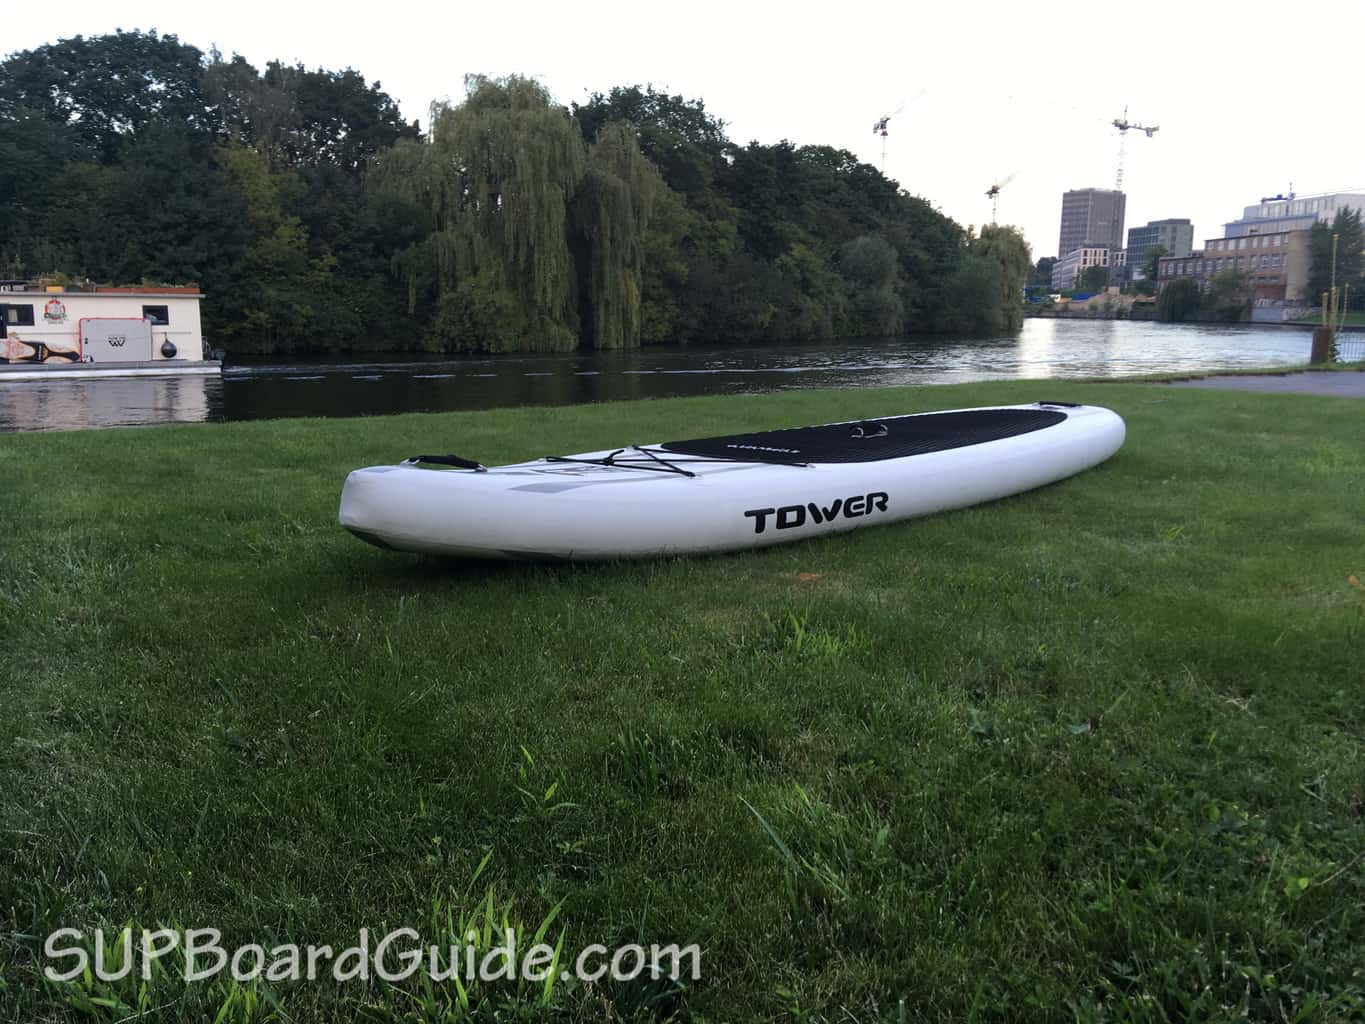 Tower Paddle Boards iSUP